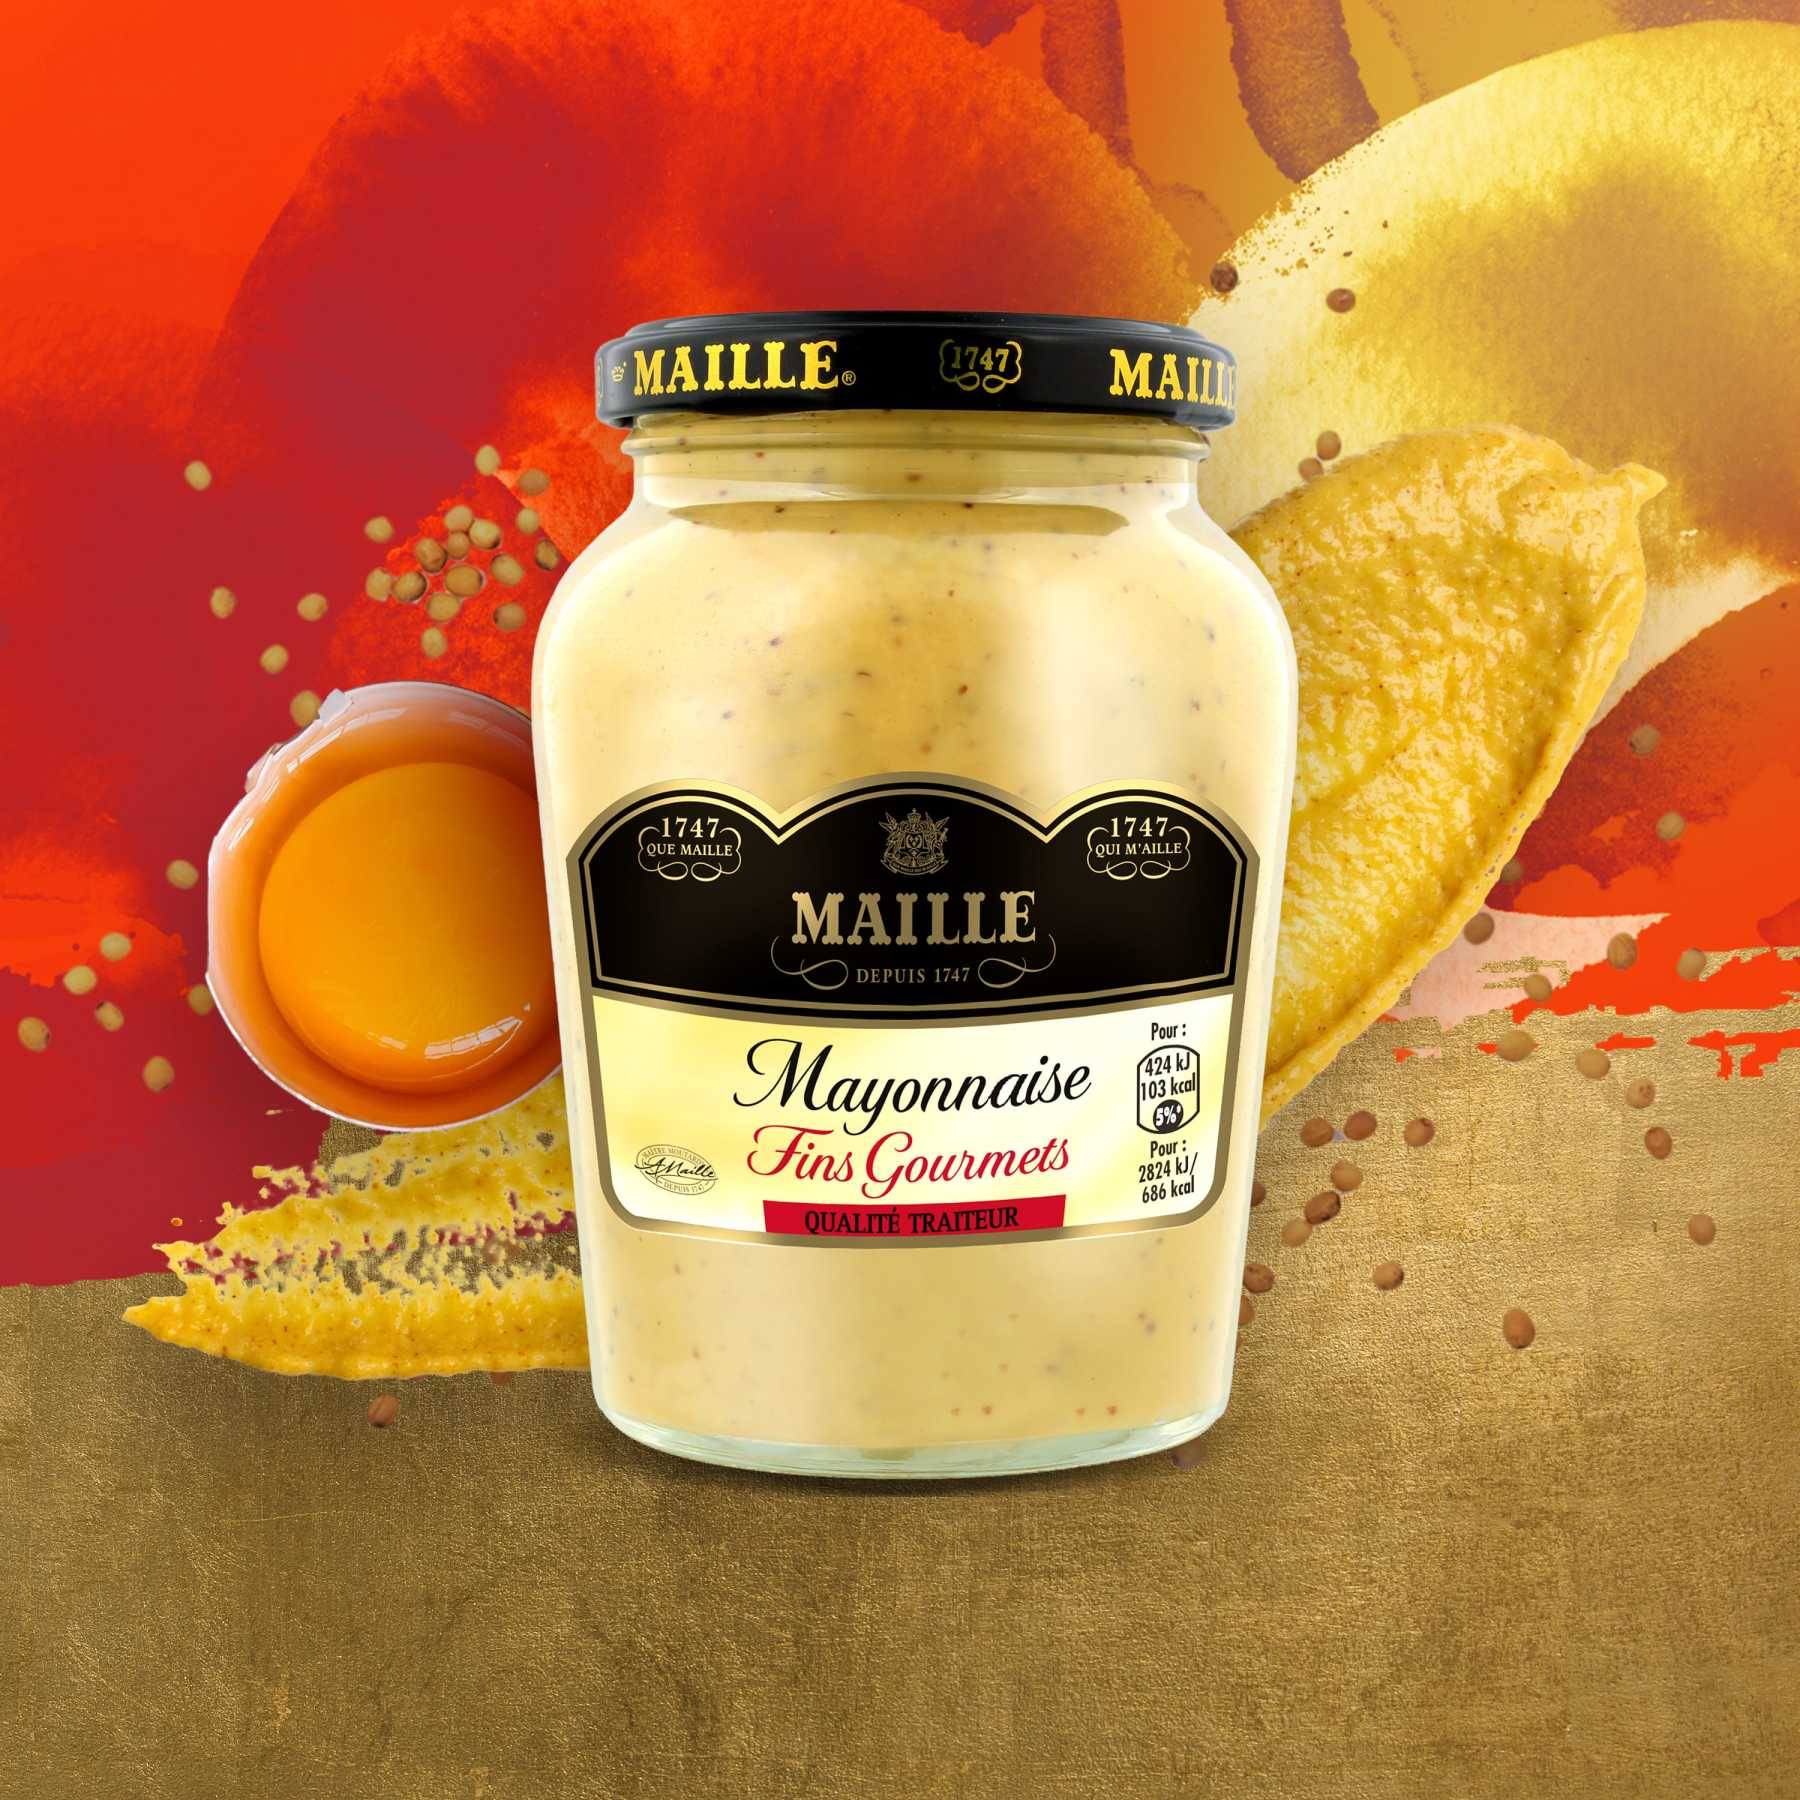 Maille - Mayonnaise Fins Gourmets Bocal 320 g, new visual